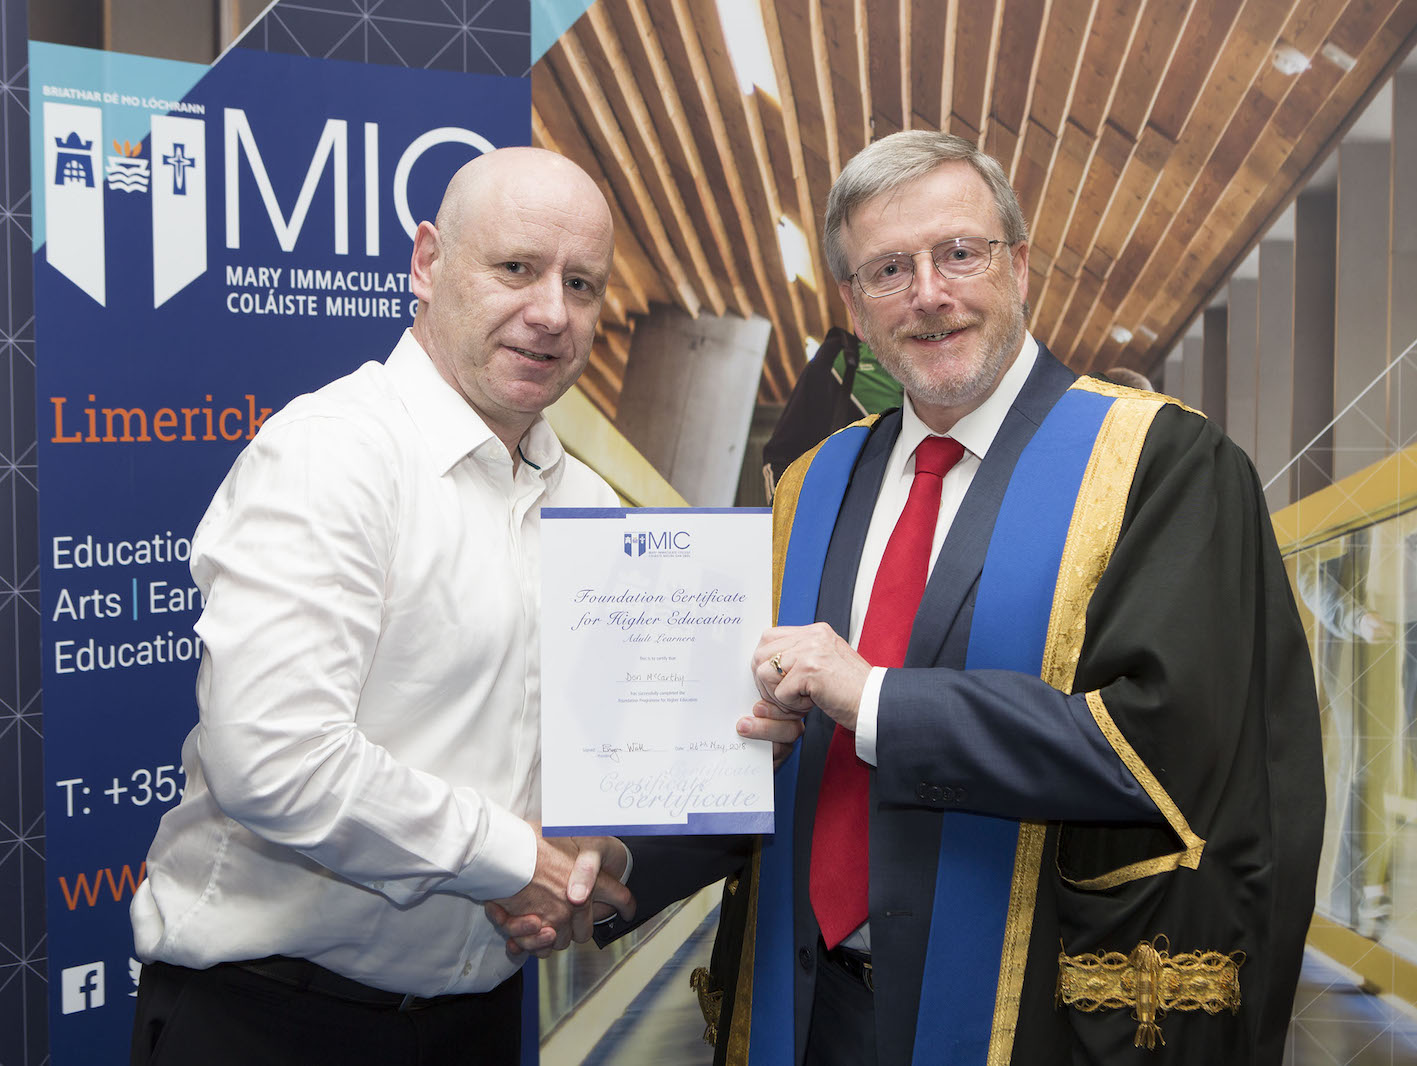 MIC Adult Education Awards 2018